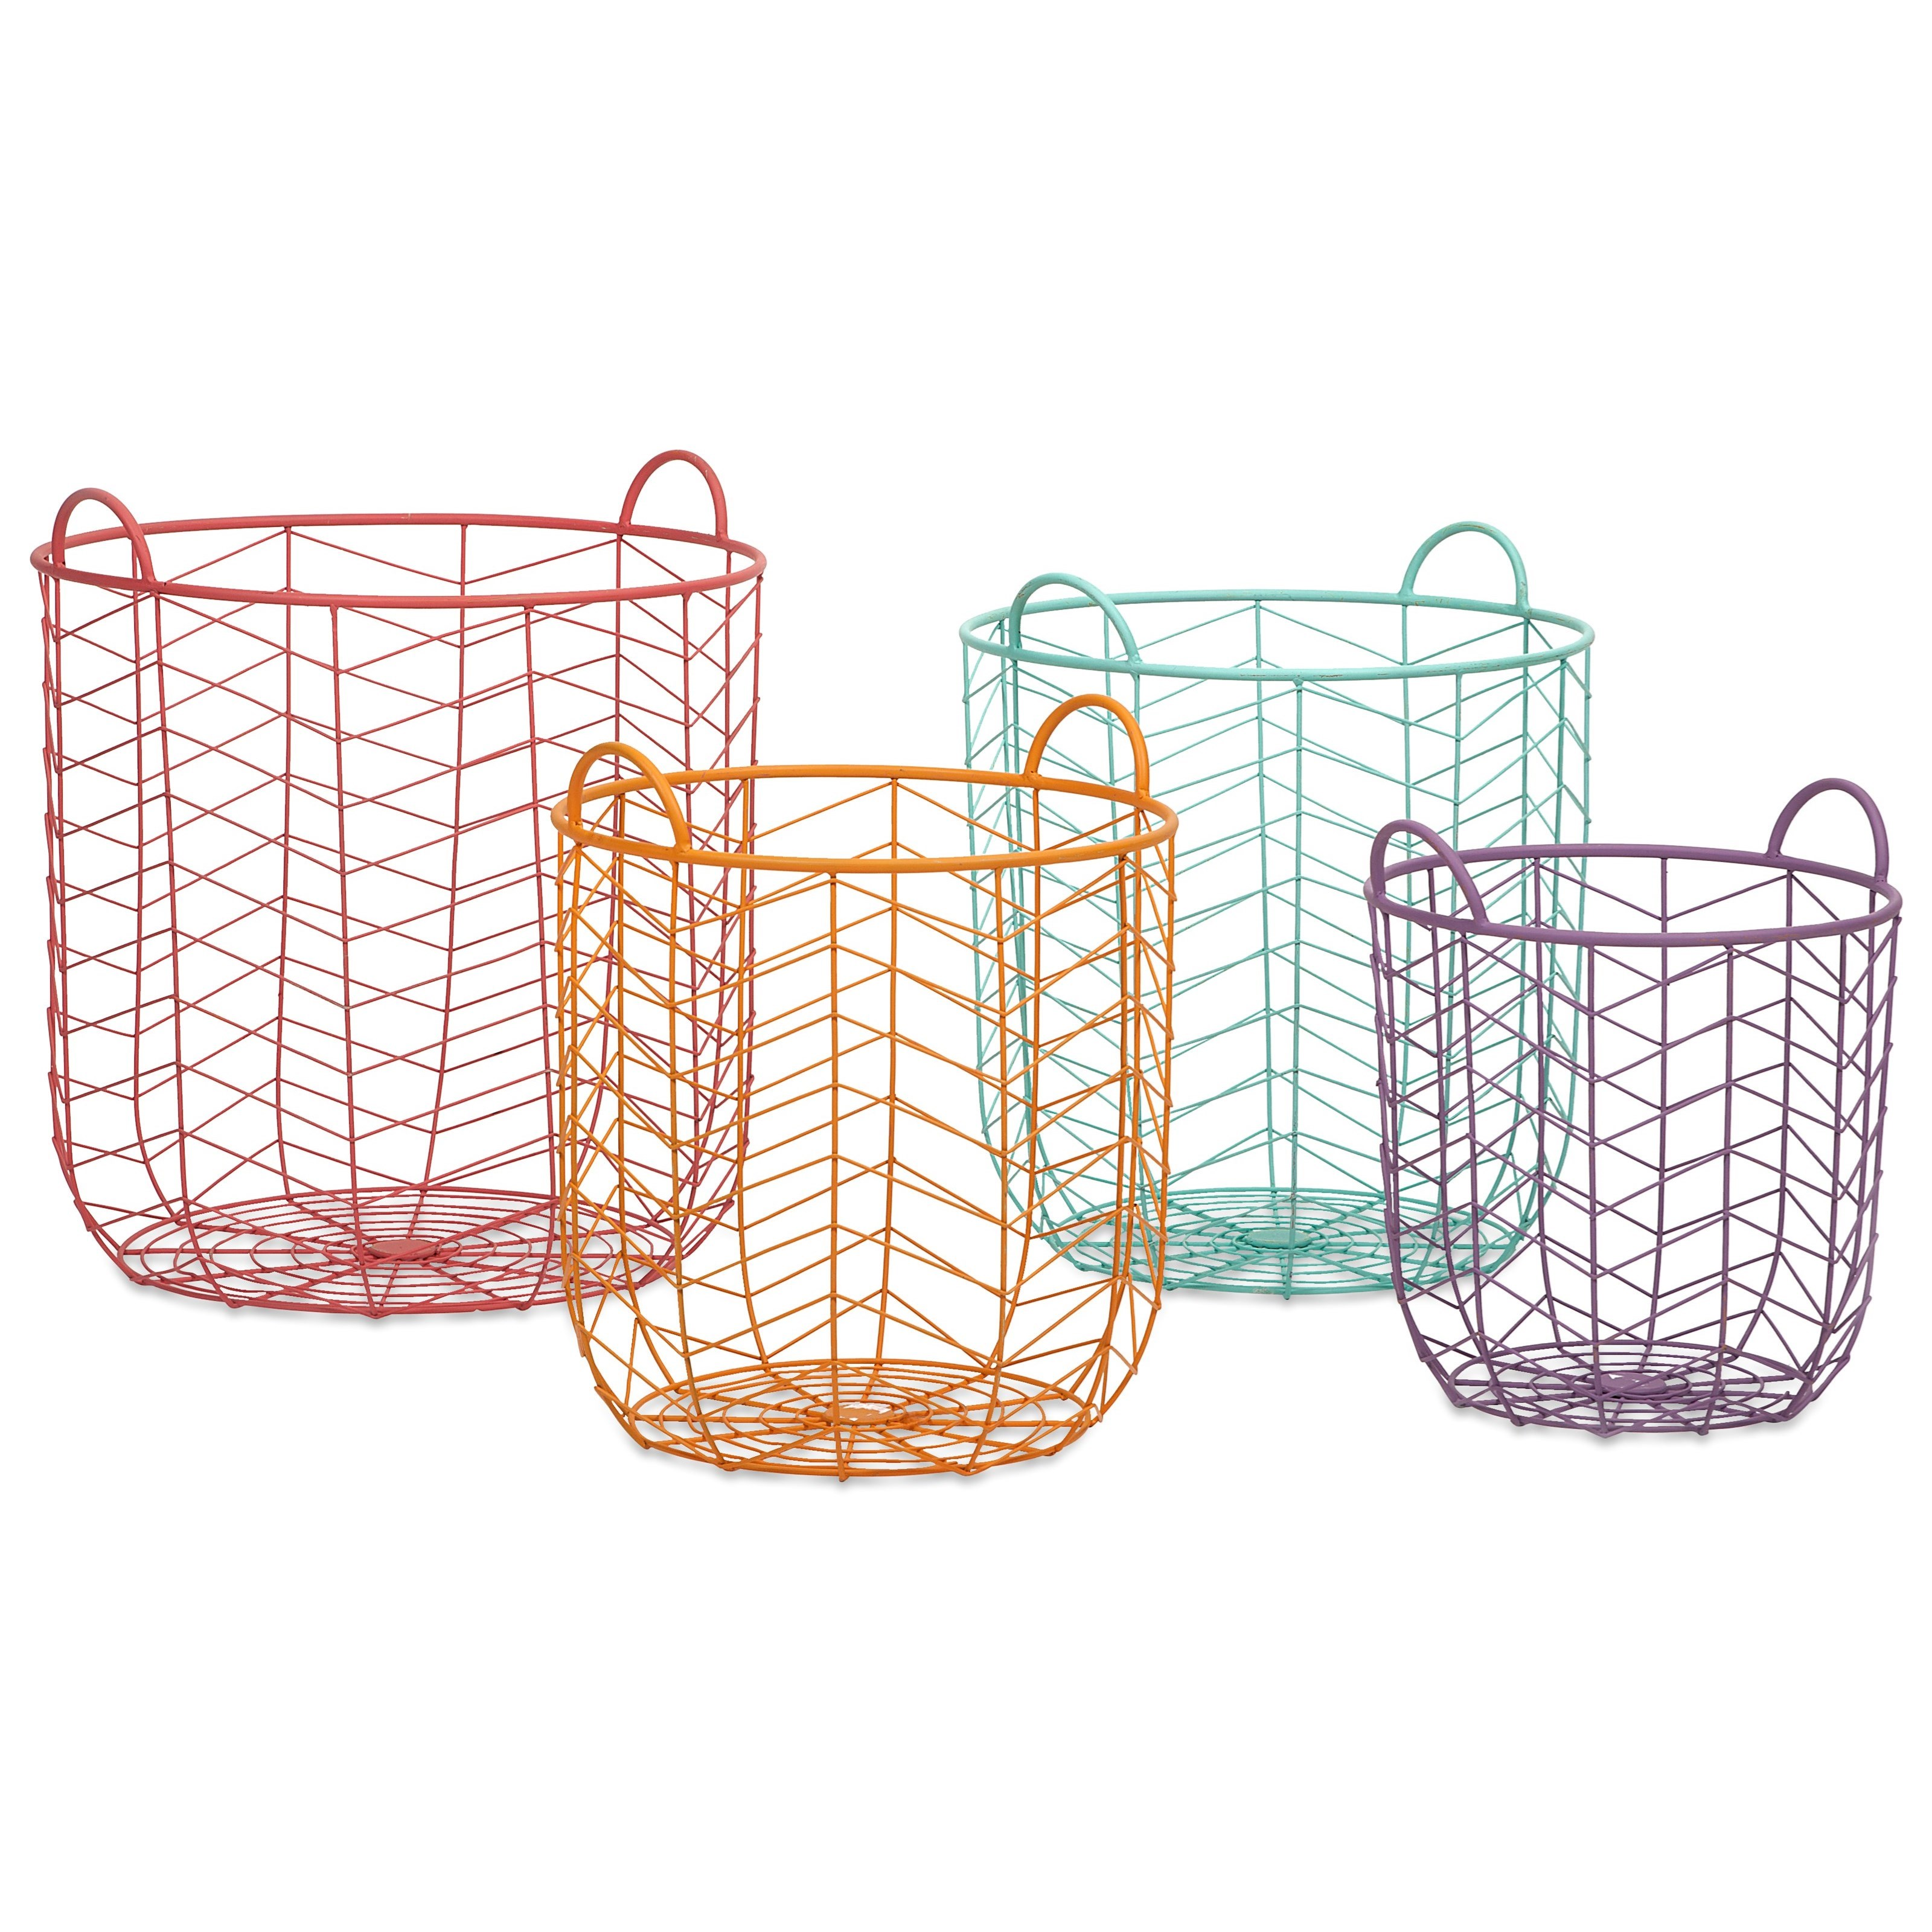 Baskets Maya Metal Baskets - Set of 4 by IMAX Worldwide Home at Alison Craig Home Furnishings